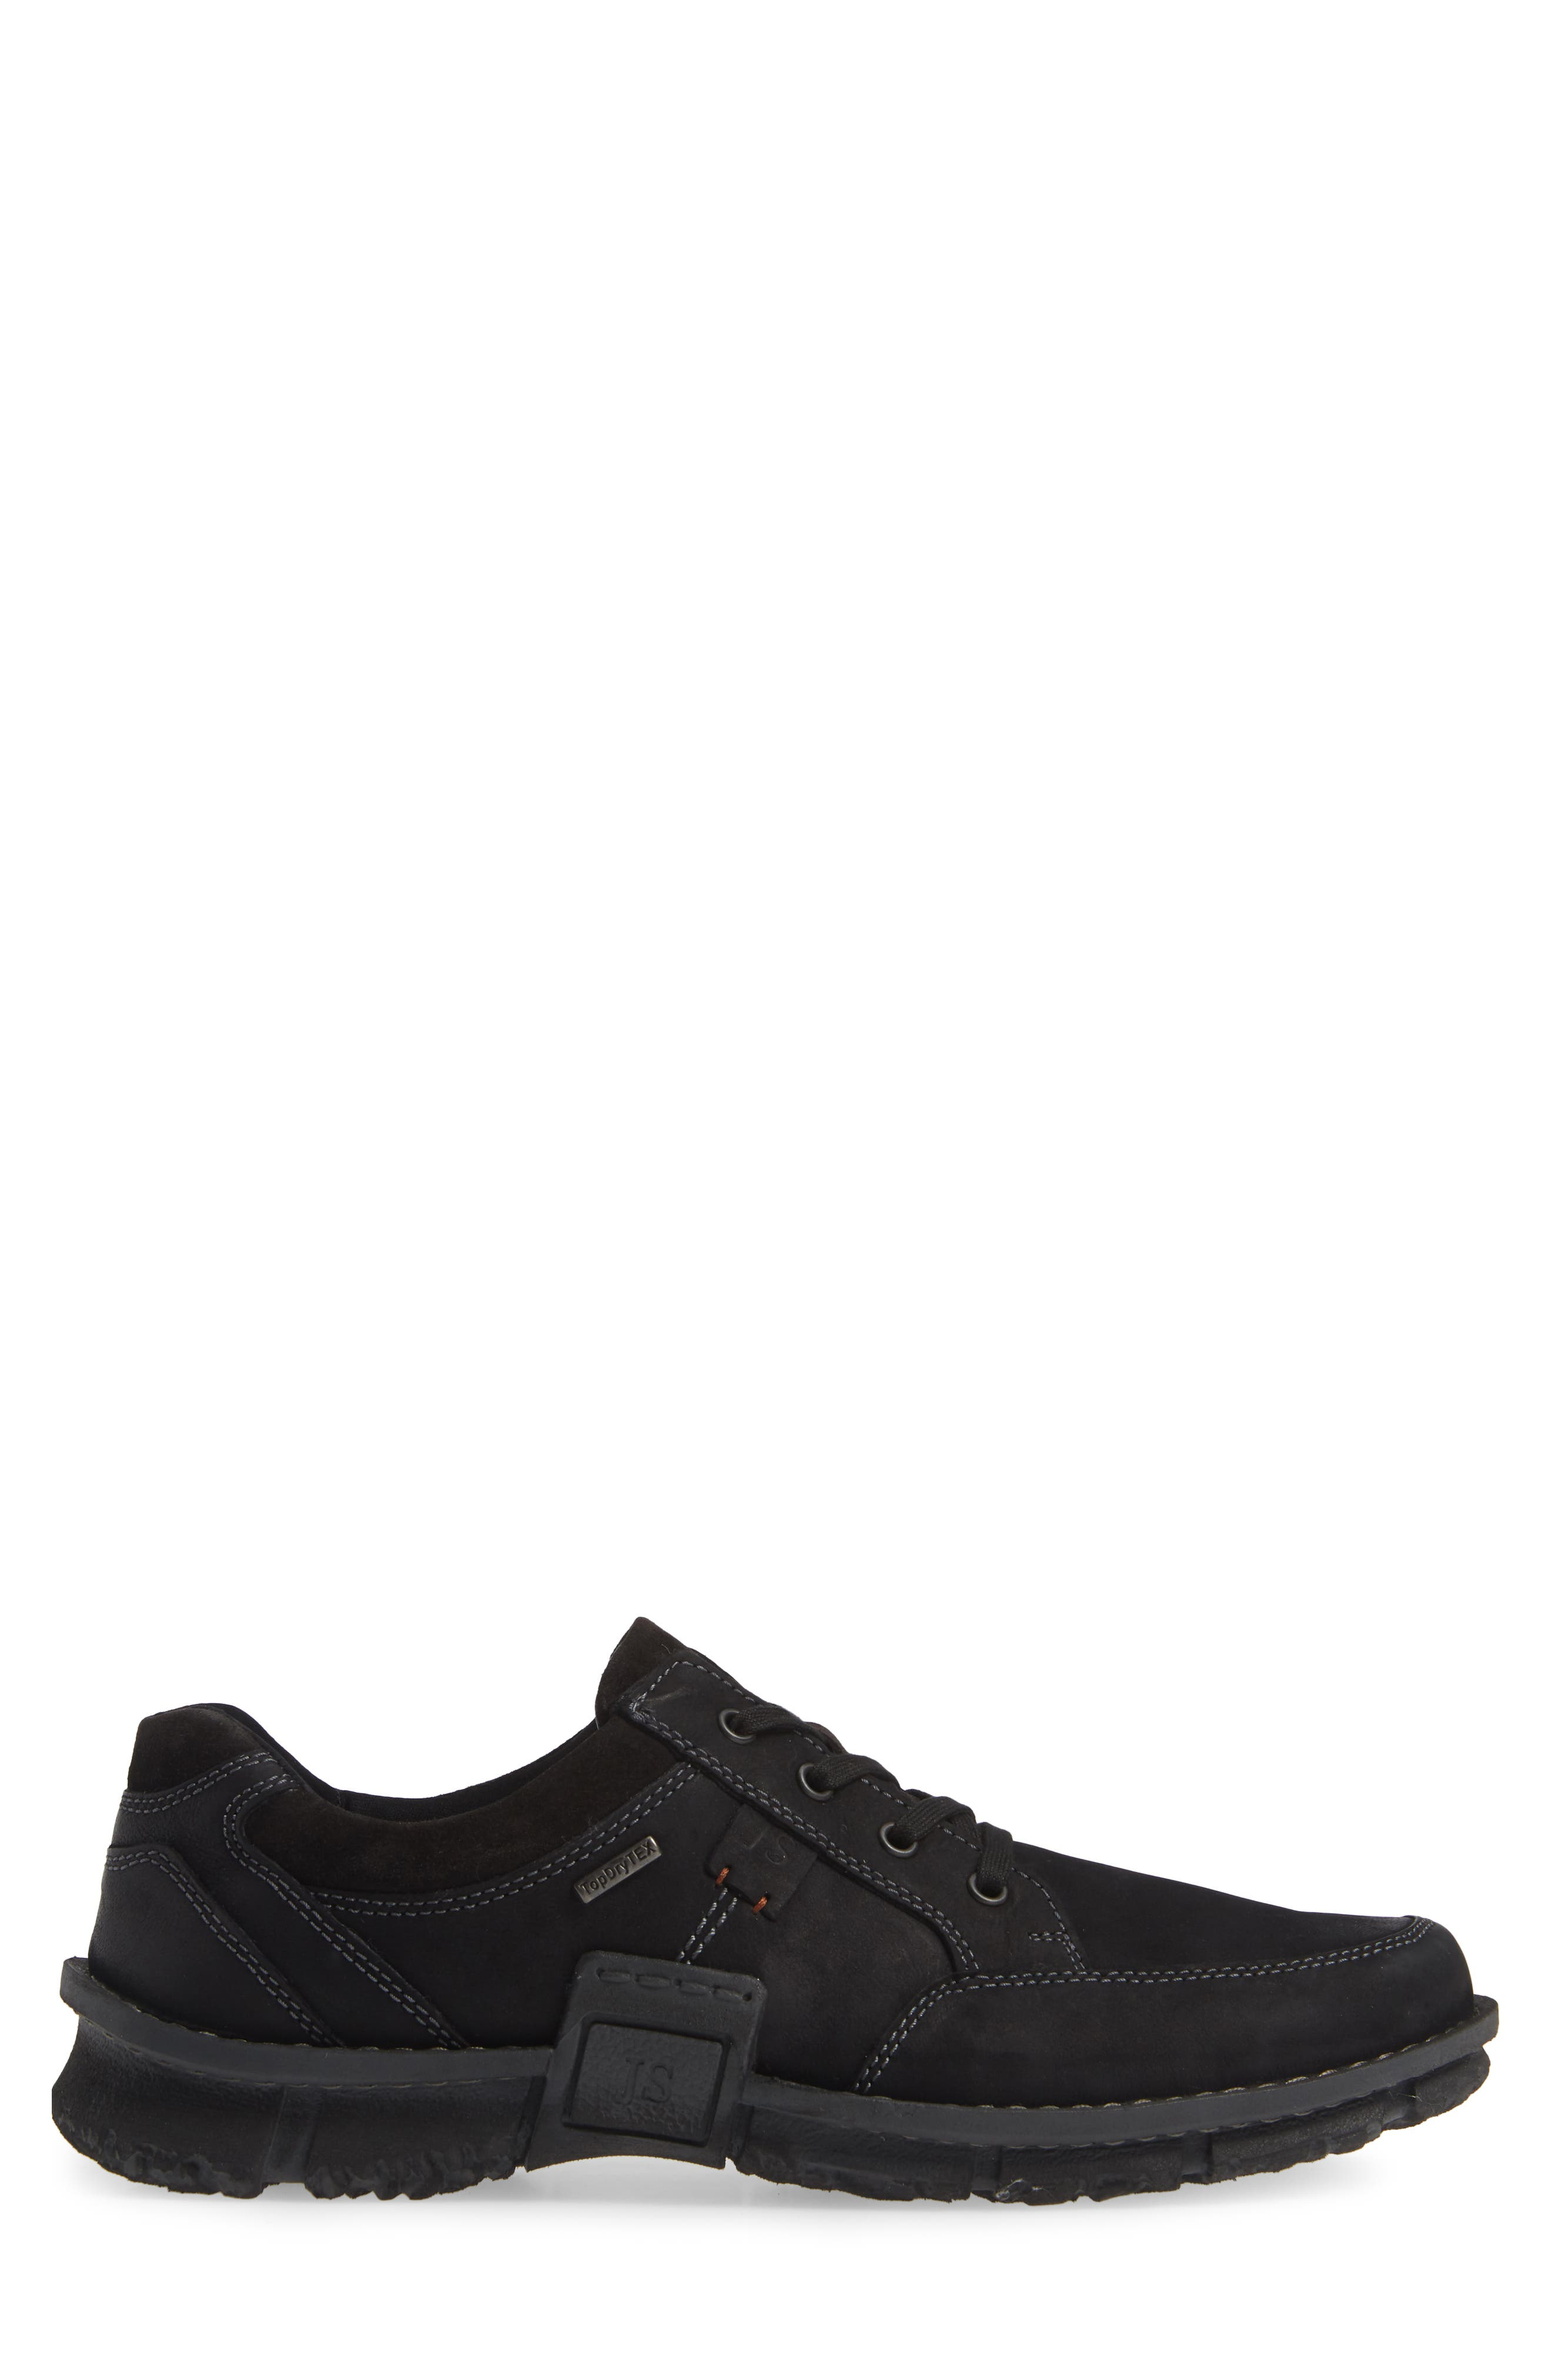 JOSEF SEIBEL,                             Willow 33 Sneaker,                             Alternate thumbnail 3, color,                             BLACK LEATHER